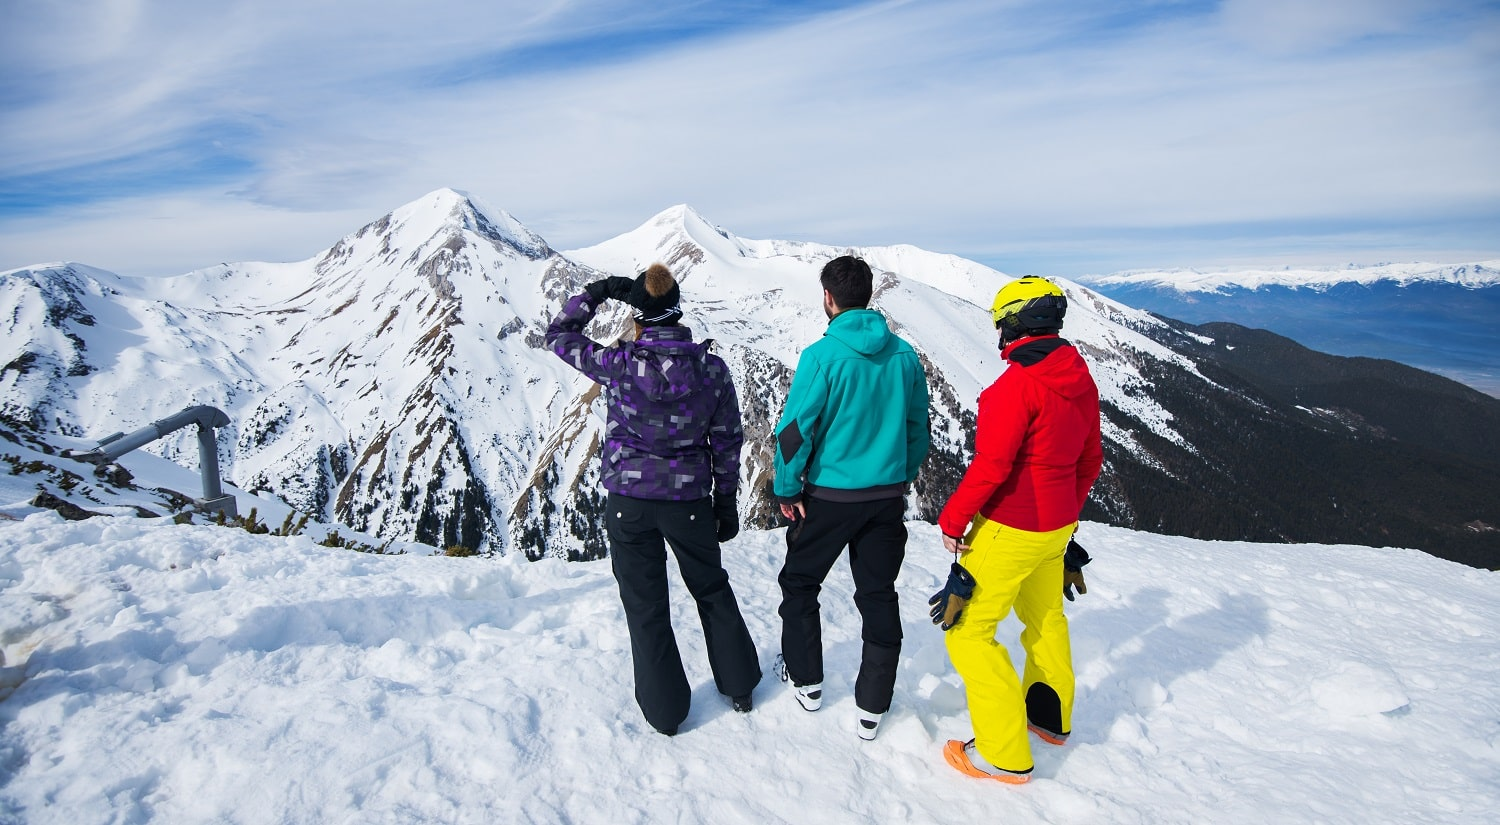 Rear view of young people enjoying in snowy winter on the top of the mountain with amazing background look.